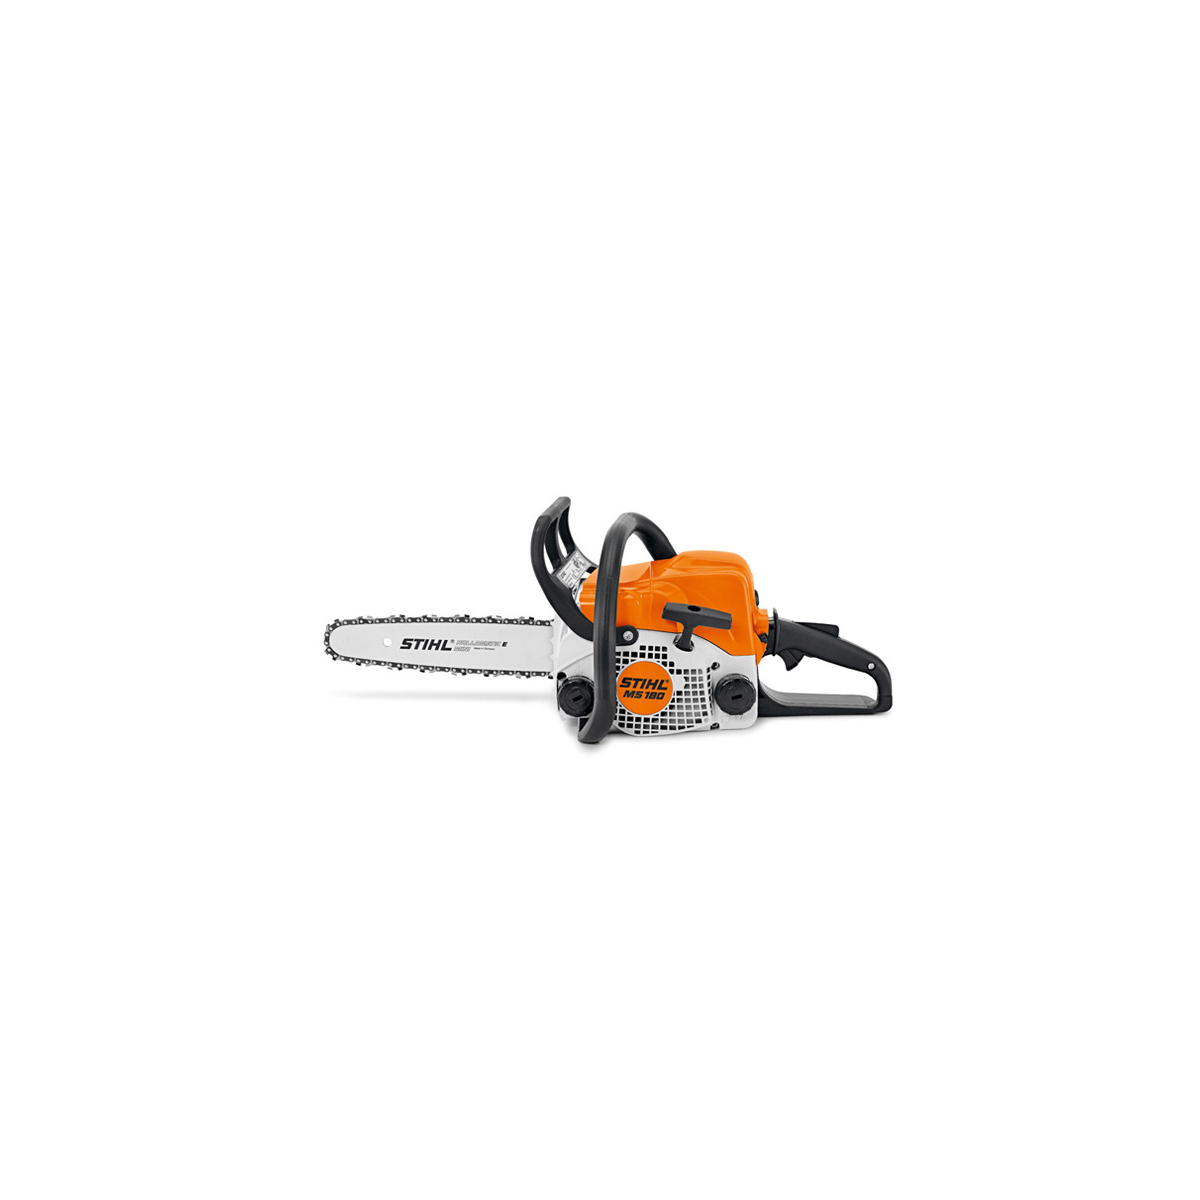 achat tronconneuse stihl ms 180 35 cm stihl bender motoculture. Black Bedroom Furniture Sets. Home Design Ideas